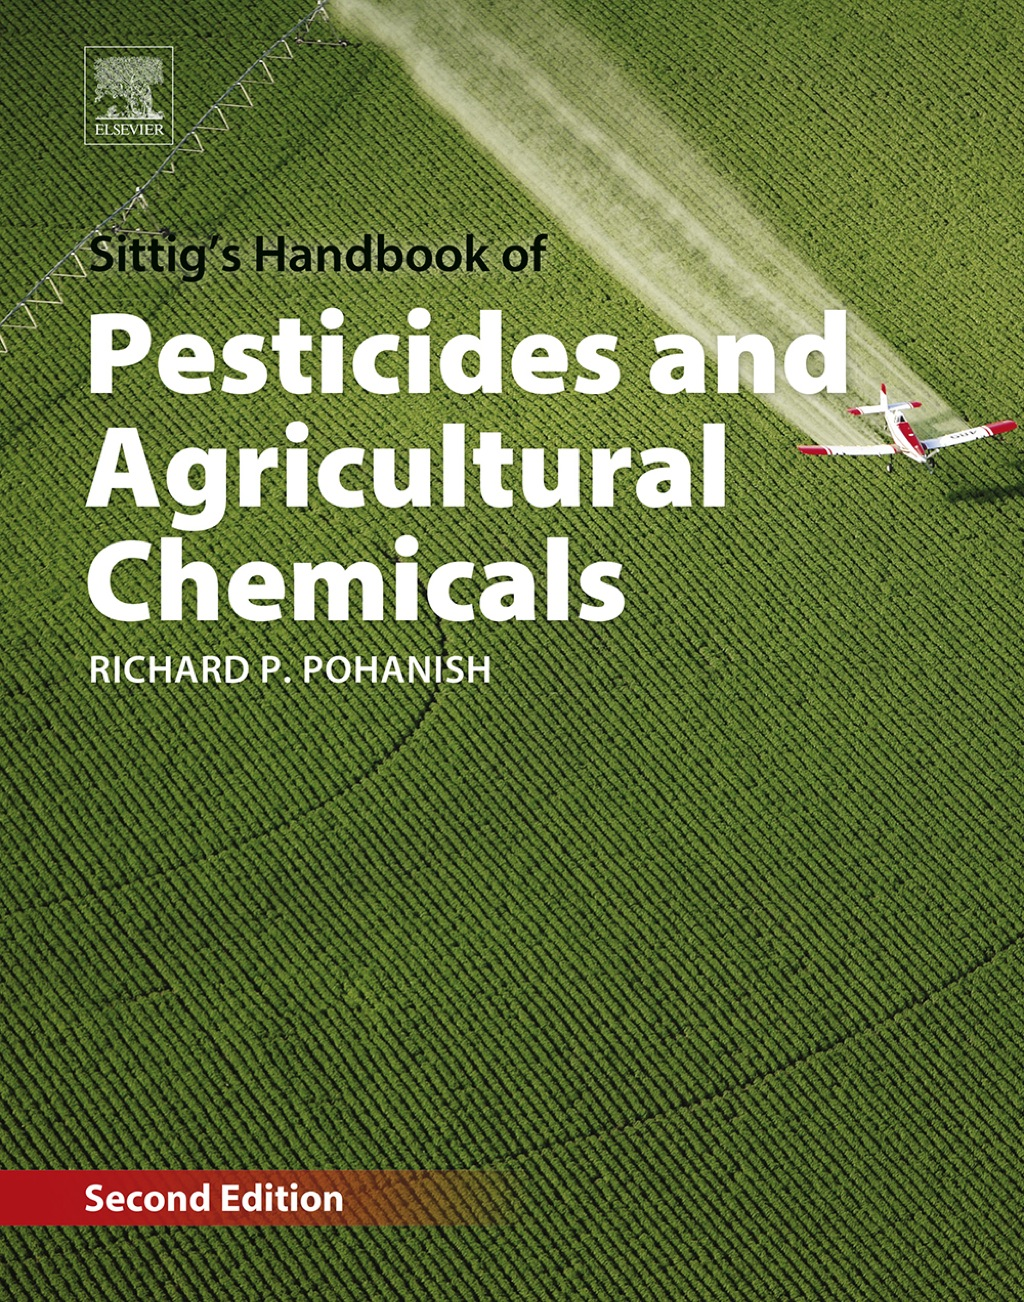 Sittig's Handbook of Pesticides and Agricultural Chemicals (eBook)